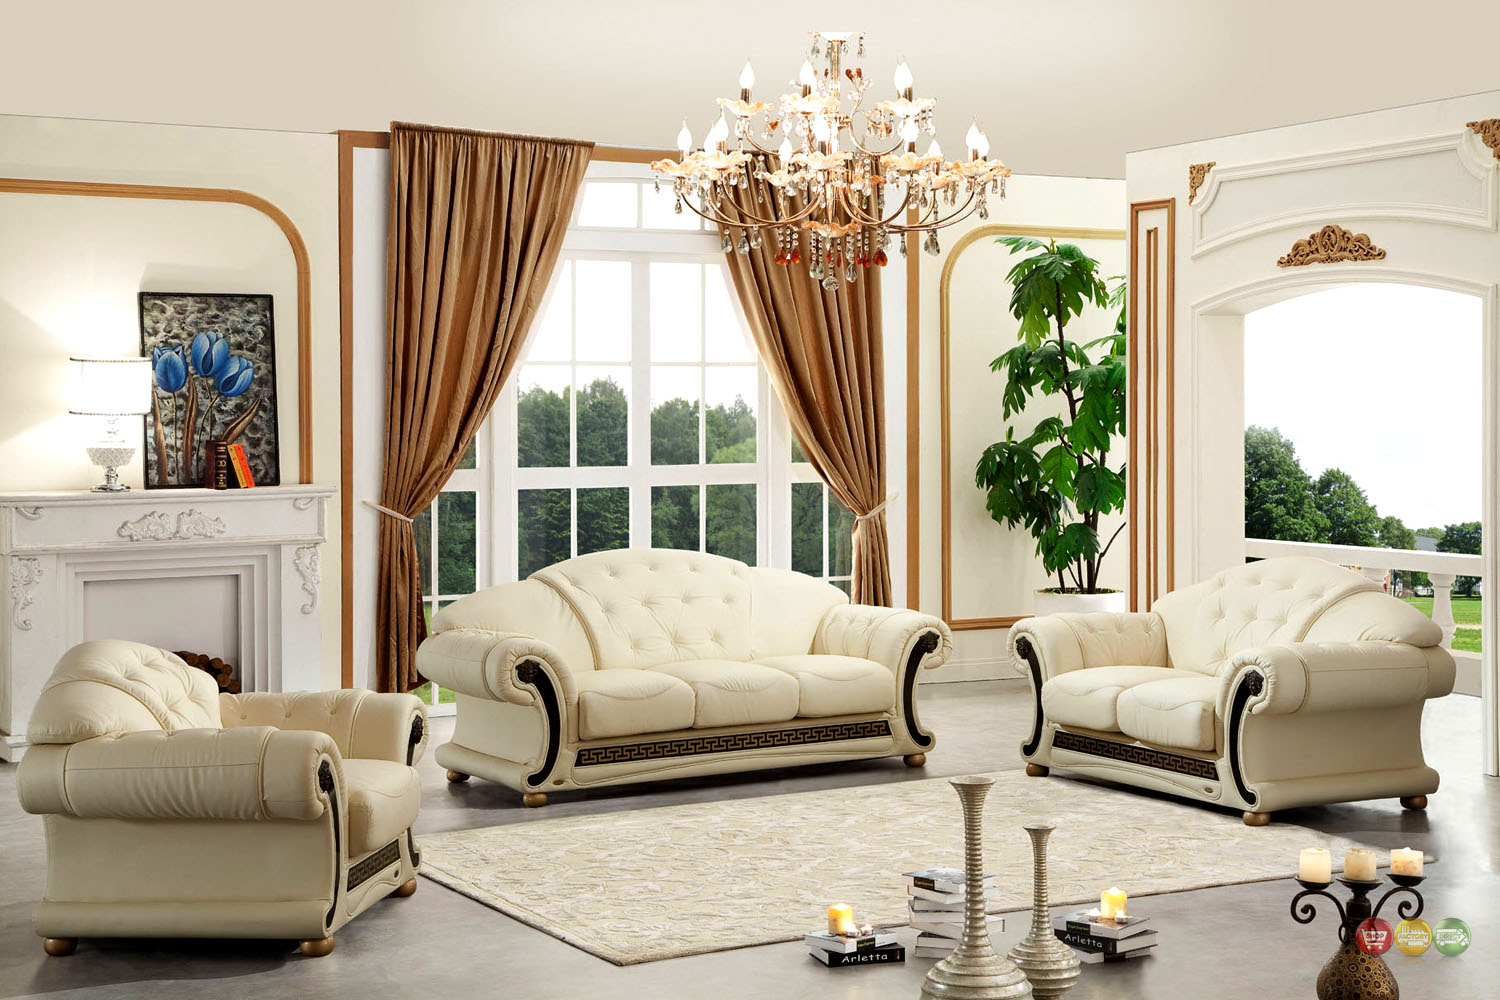 Versace Cleopatra Cream Italian Top Grain Leather Beige Living Room Sofa Set - Versace Cleopatra Cream Italian Top Grain Leather Beige Living